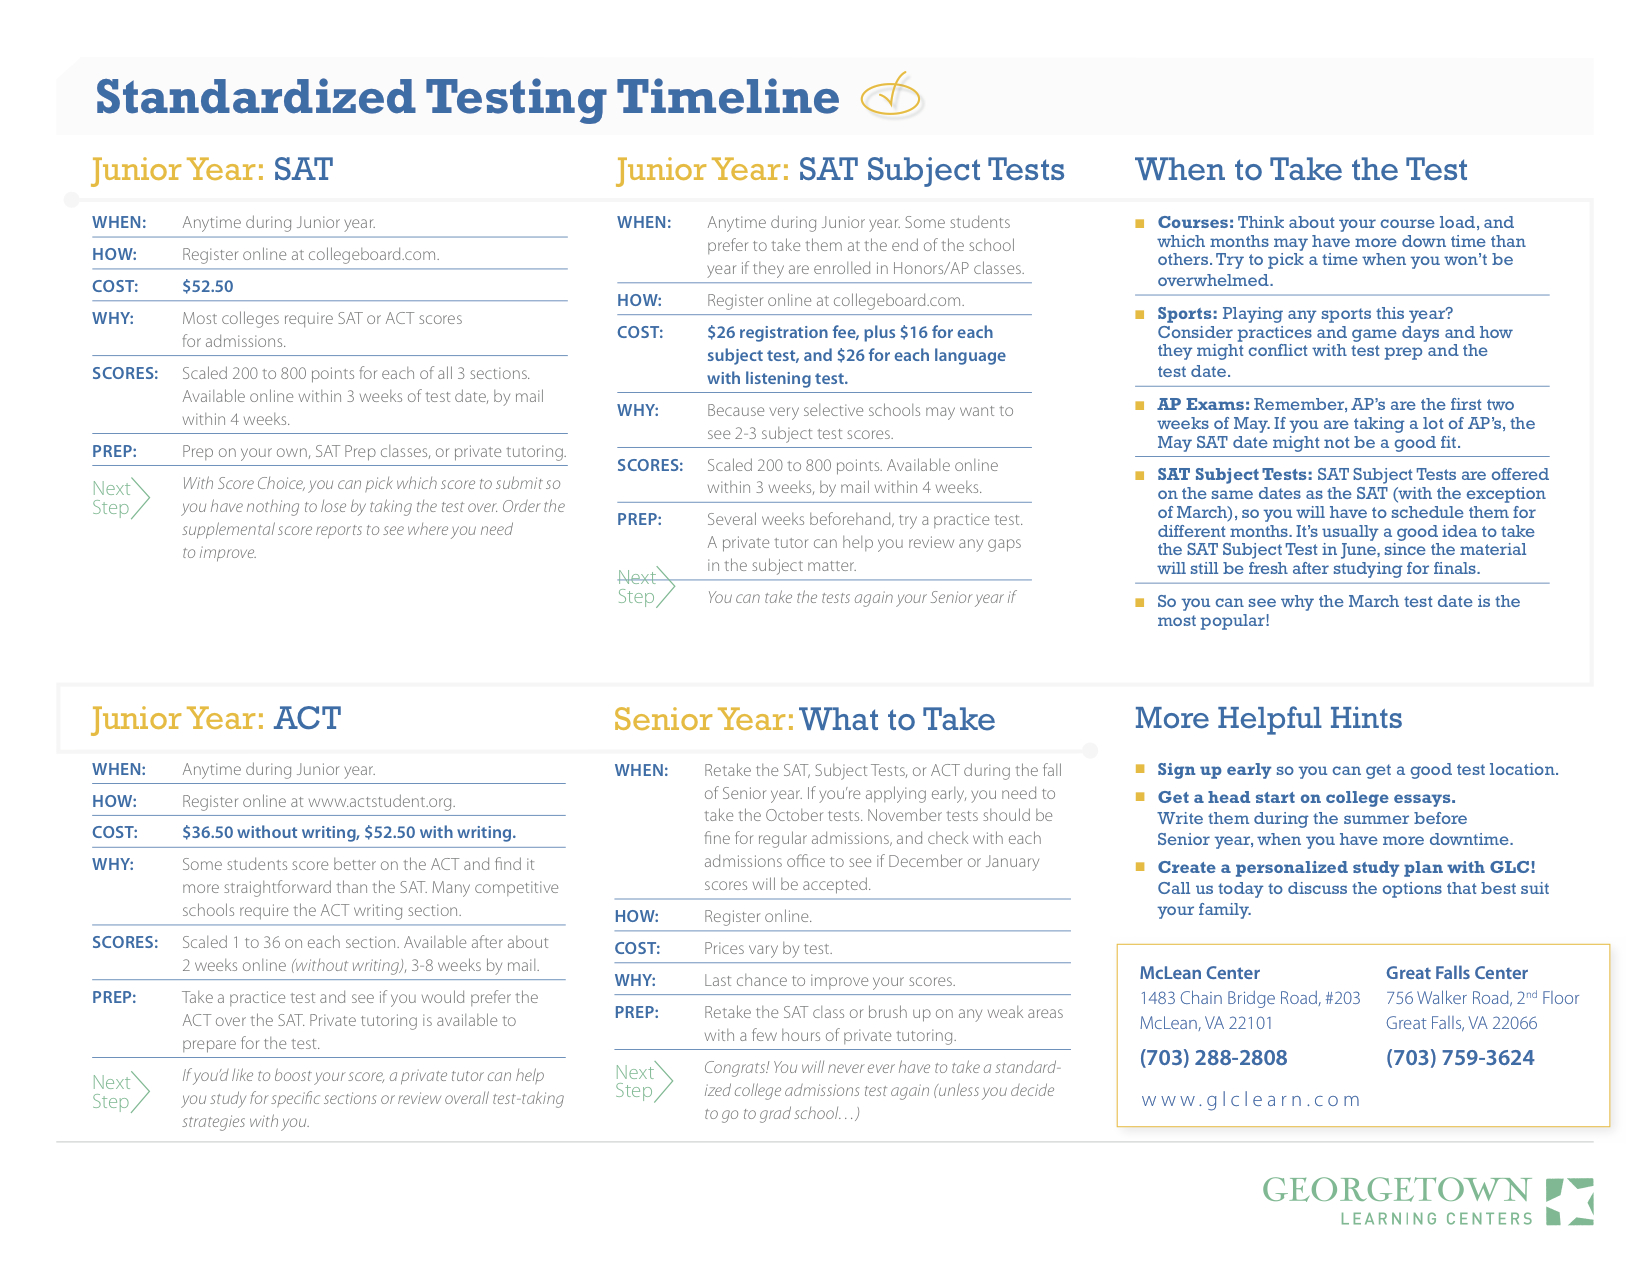 Standardized Testing Timeline - NV 2014-2015 copy